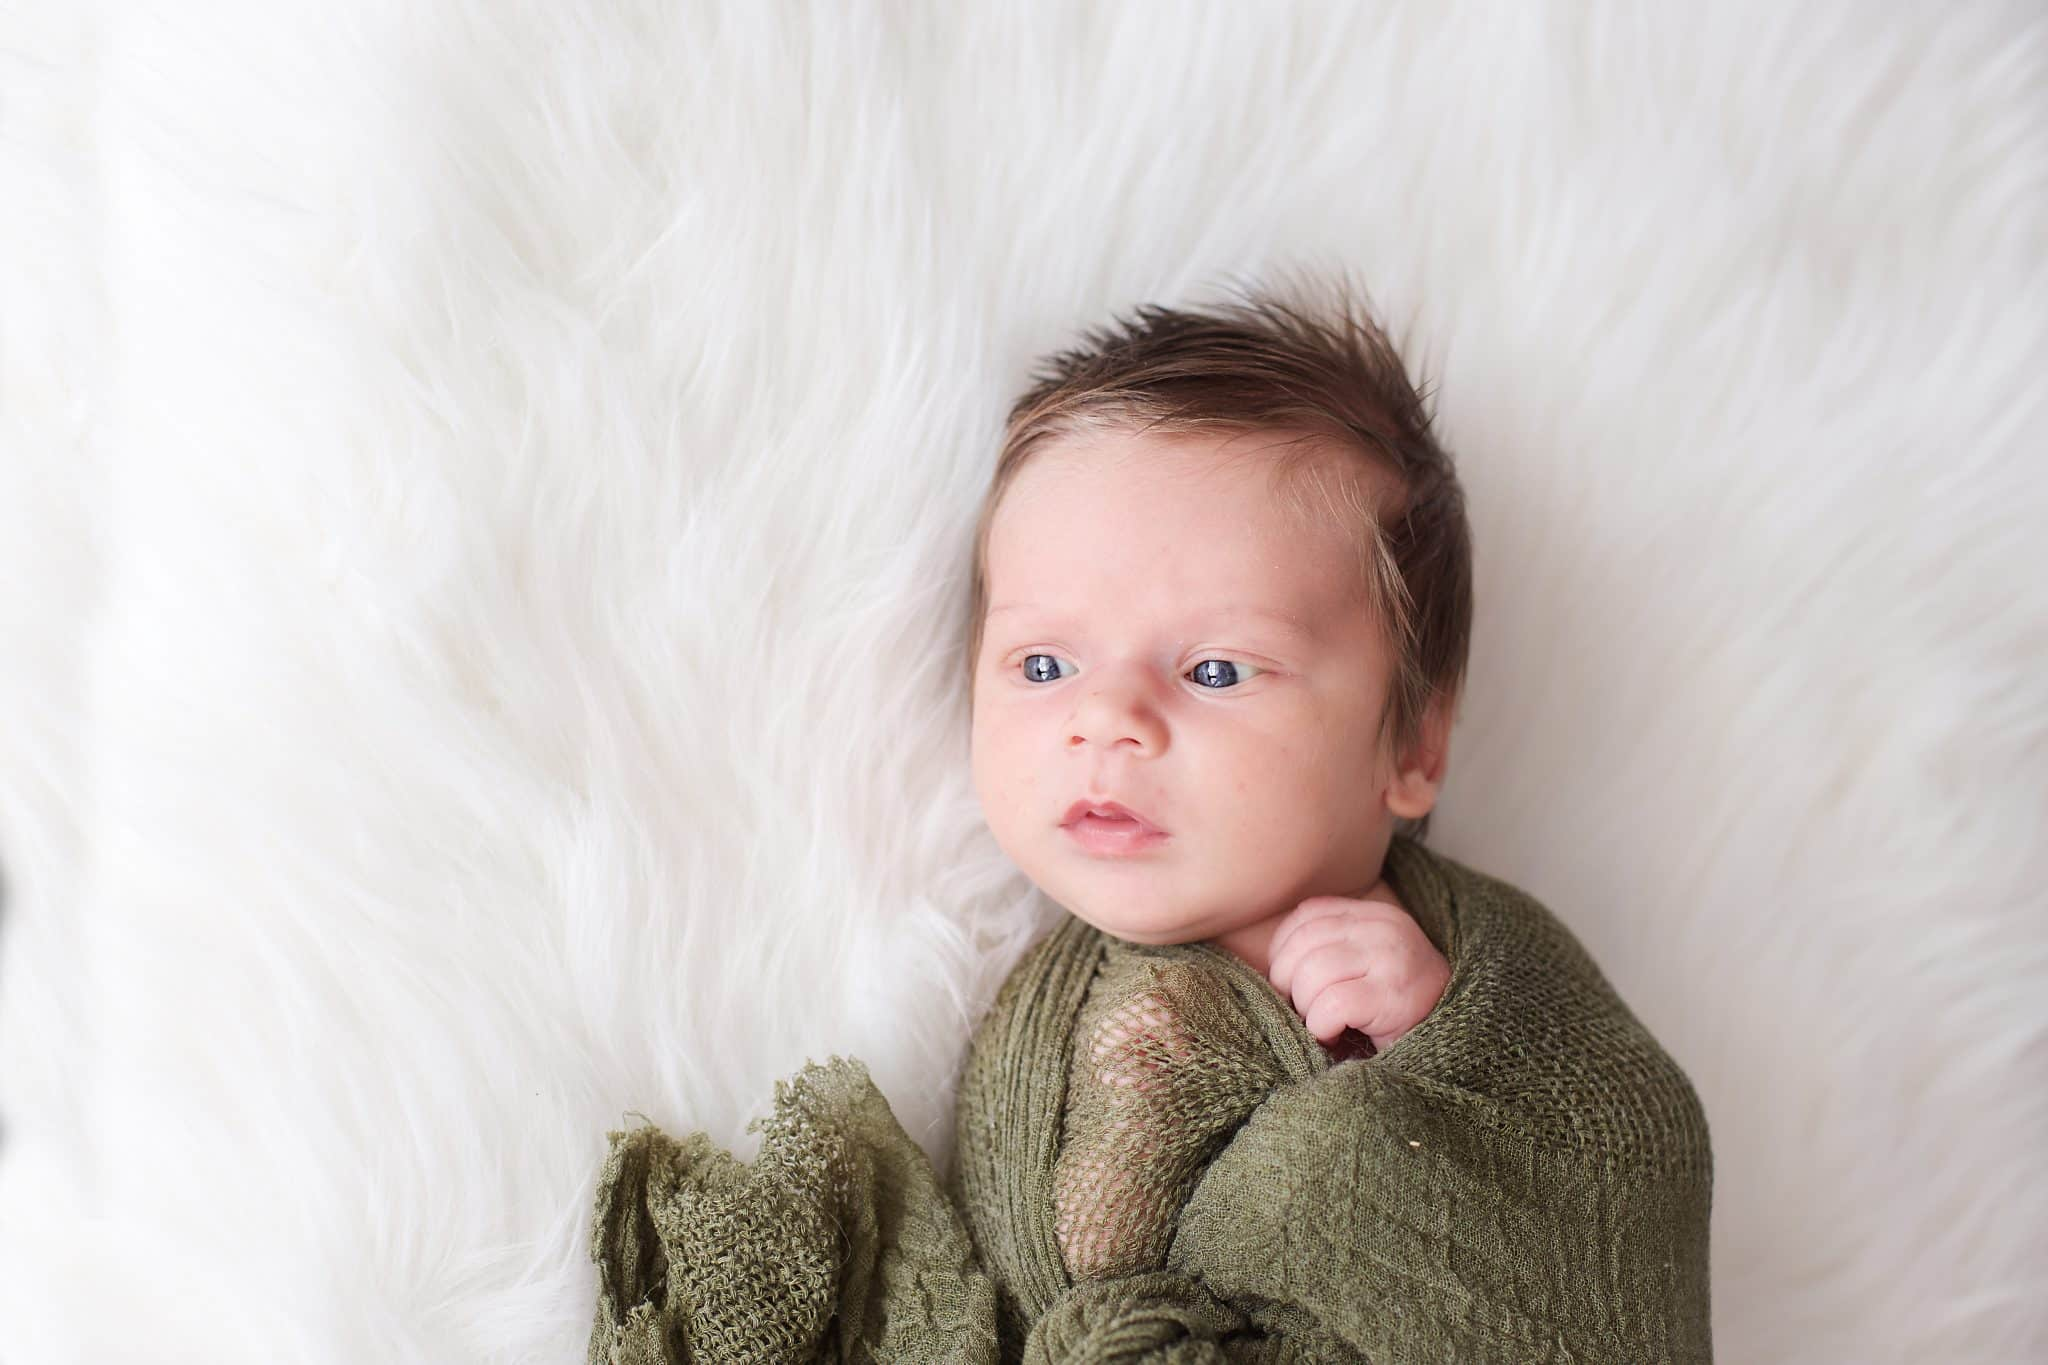 Newborn photo session. Newborn, olive green wrap, tons of hair, eyes wide open, on white fur backdrop